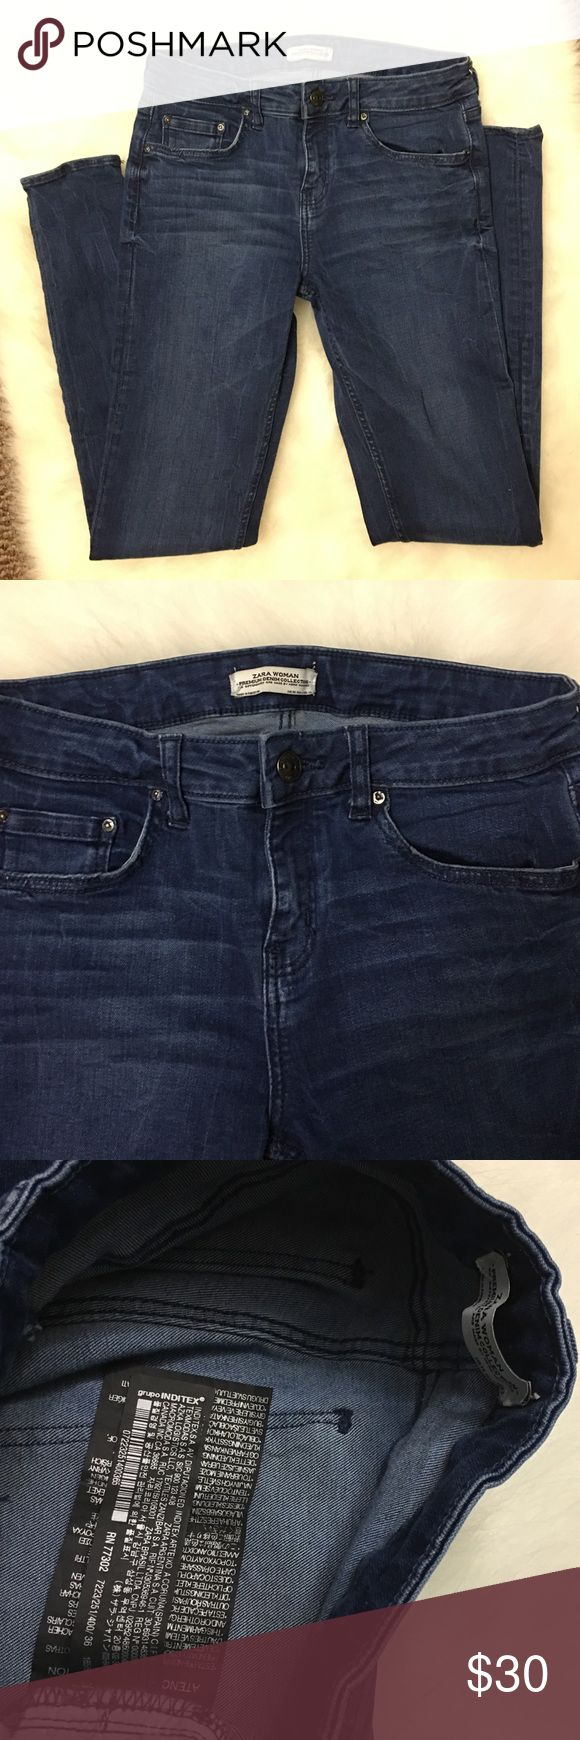 """Zara woman skinny jeans Inseam is 27"""". Size 36 euro, US 4. Color is a medium blue. Stretchy more like jeggings than a stiff Jean. Zara Jeans Skinny"""